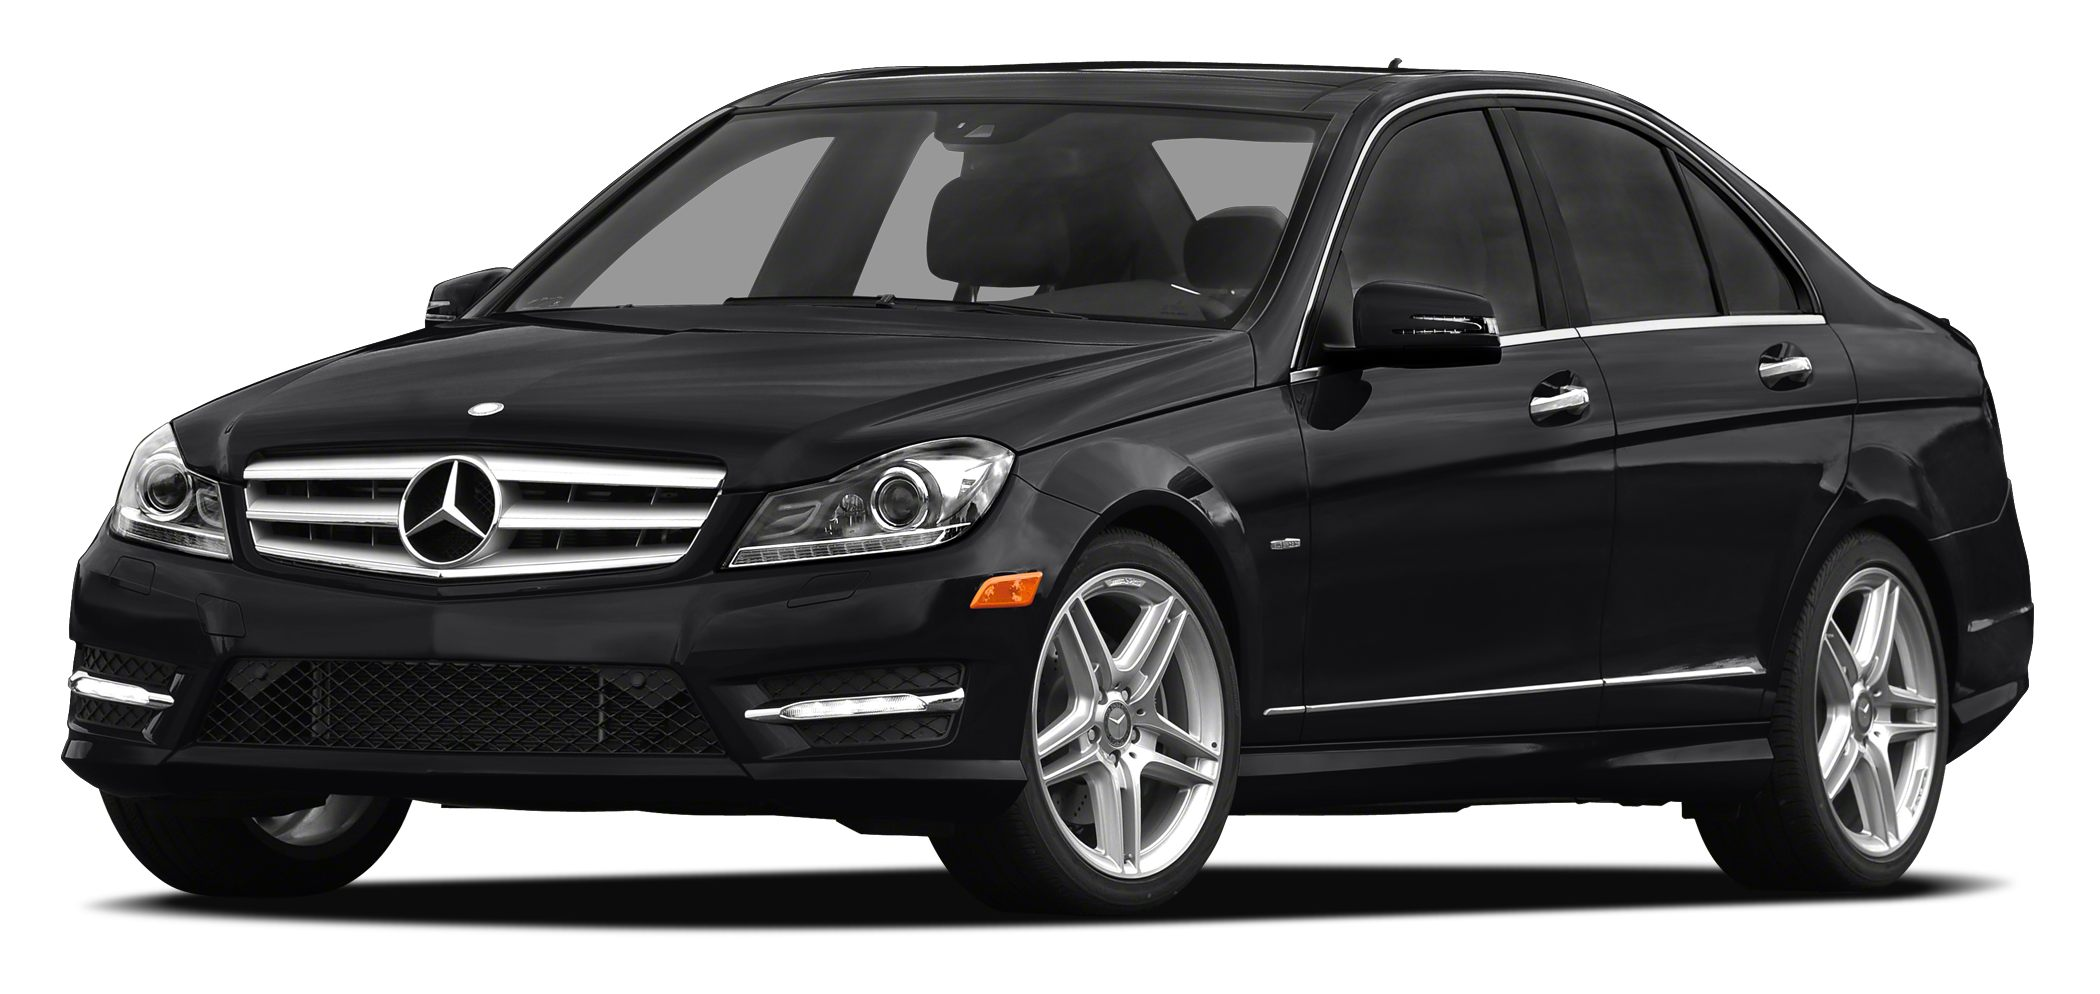 2012 MERCEDES C-Class C250 Sport THIS VEHICLE COMES WITH OUR BEST PRICE GUARANTEE FIND A BETTER